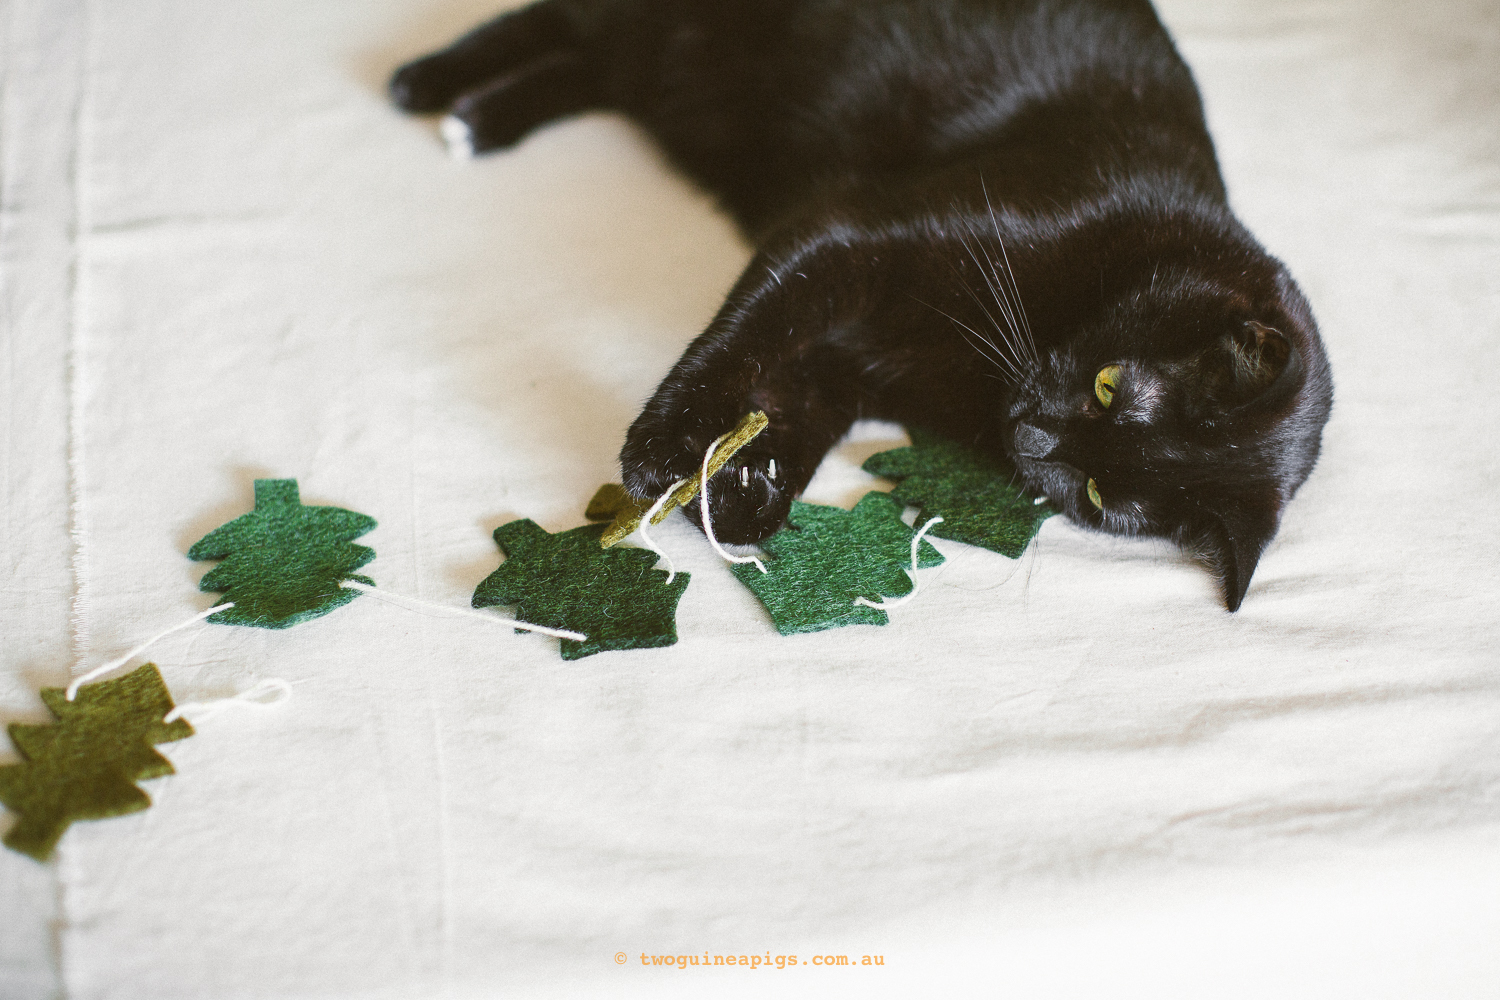 twoguineapigs_pet_photography_blackcats_pf_behind-the-scenes_christmas_madness